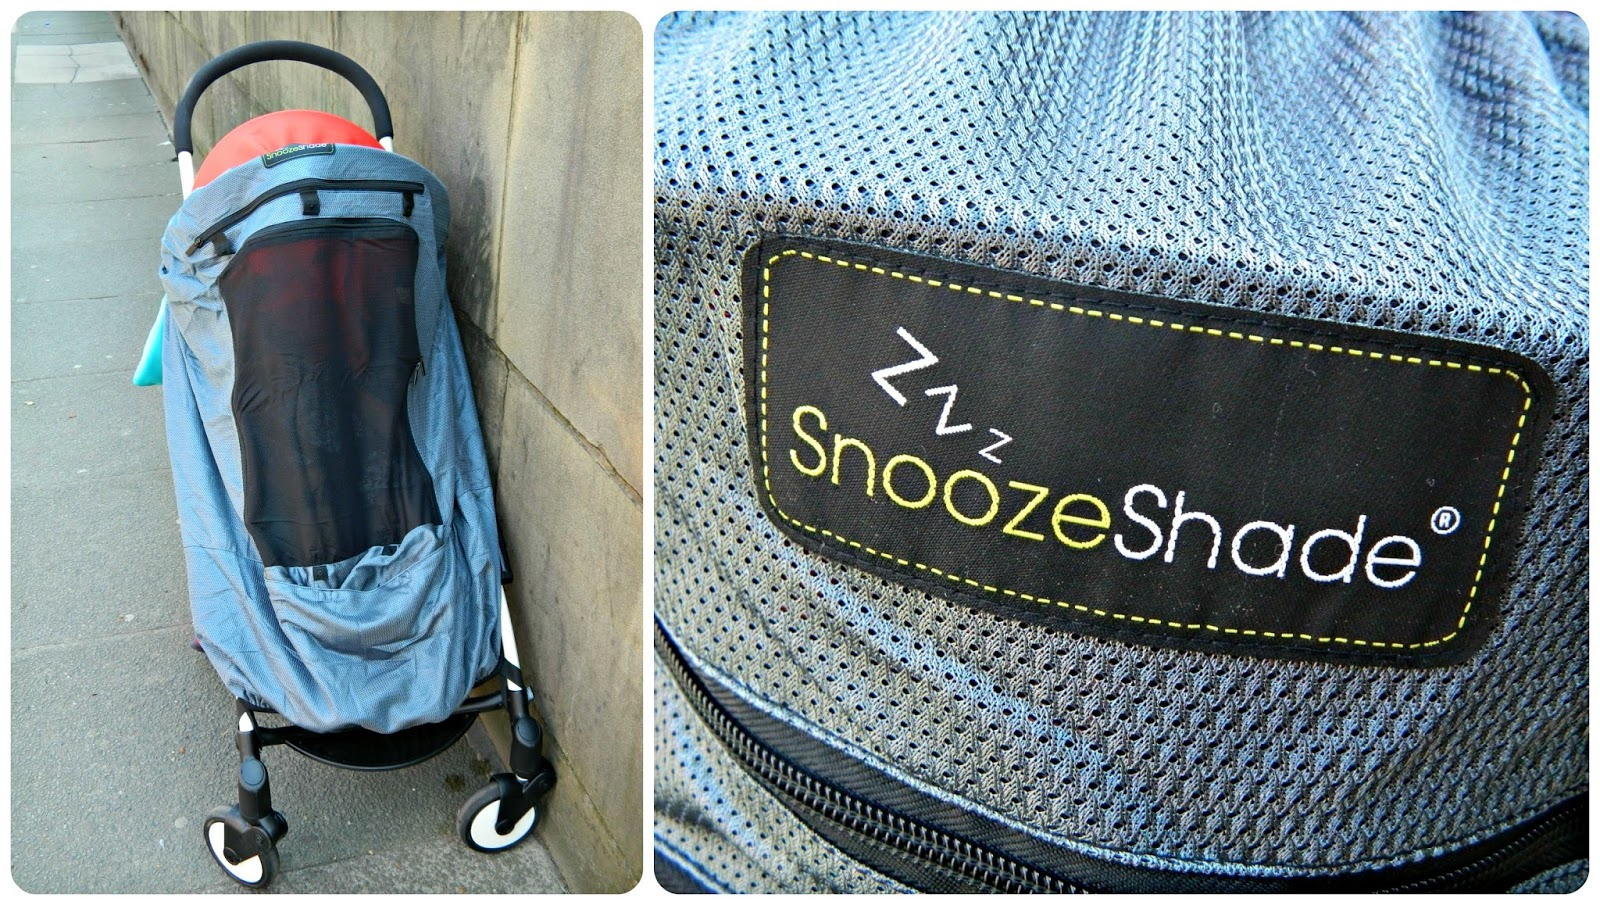 Snoozeshade Plus Deluxe on BabyZen YoYo